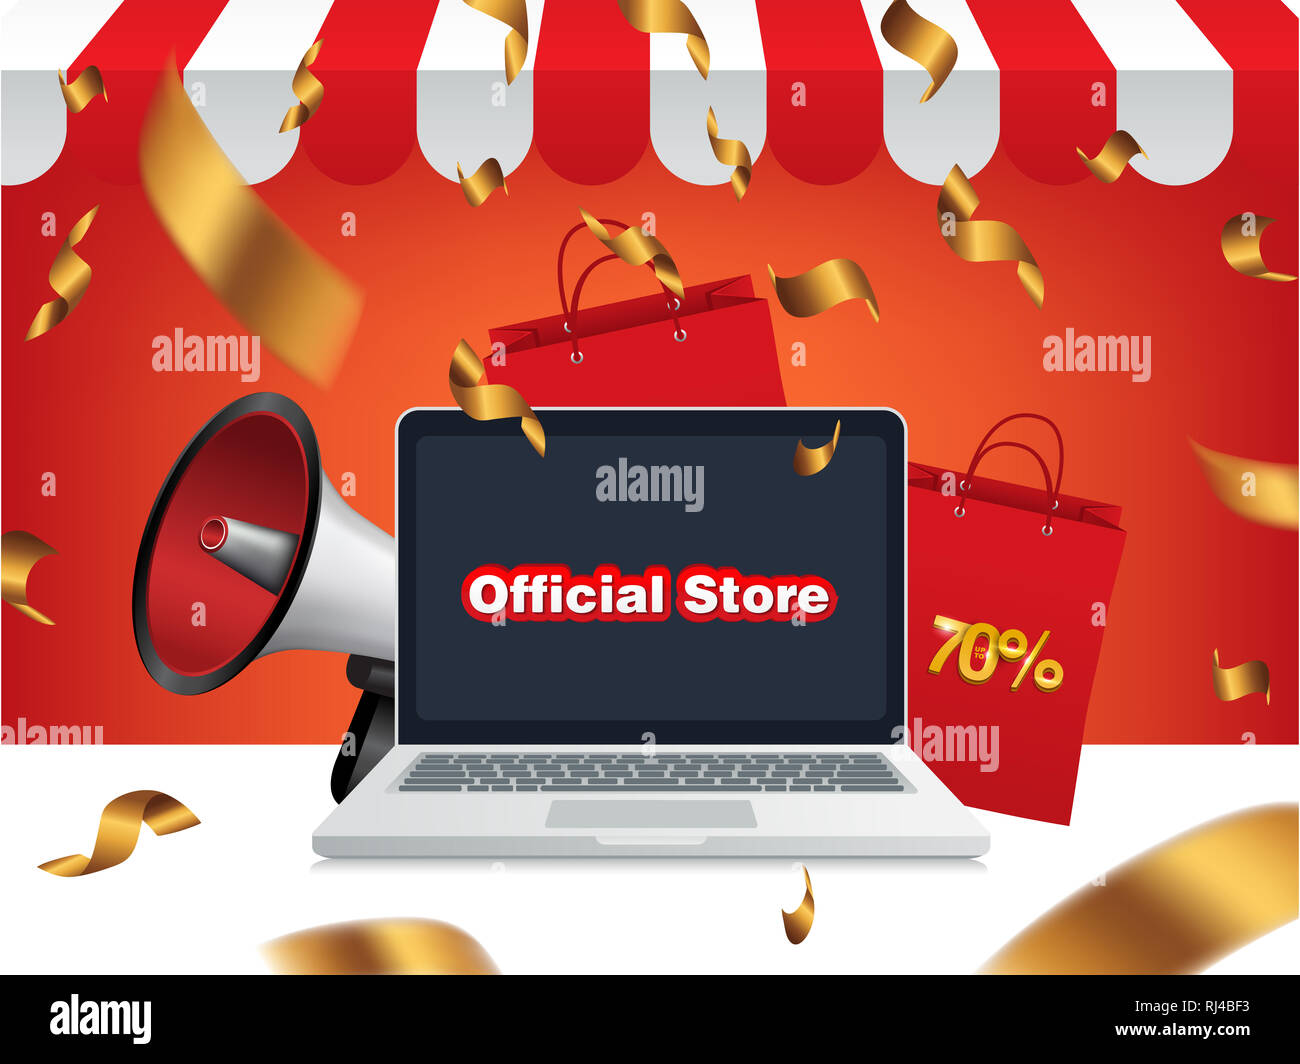 Grand Opening Official Store Sale Bag Online Shop Background Stock Photo Alamy